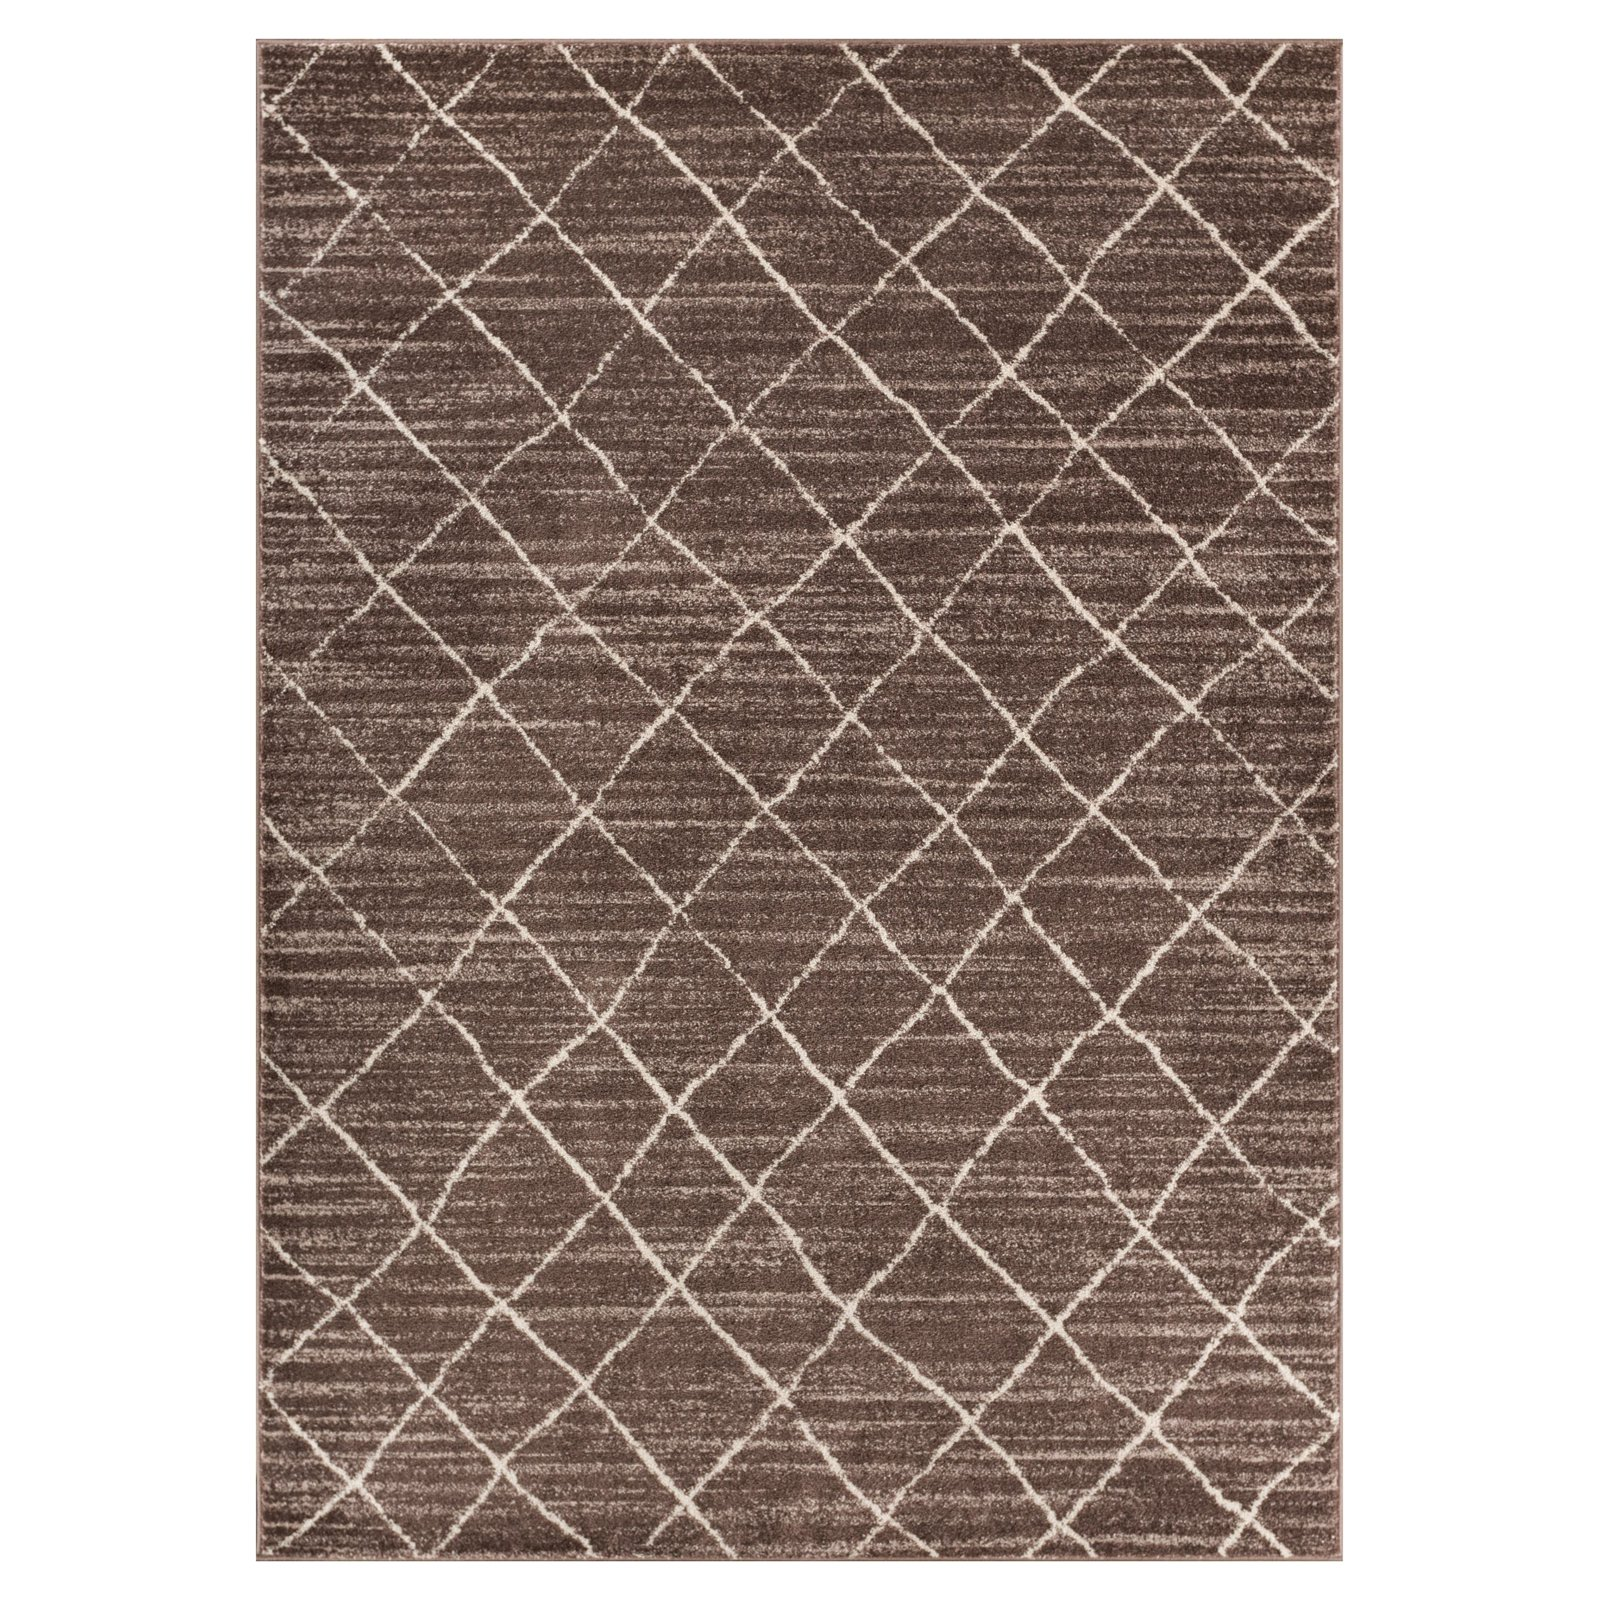 Well Woven Sydney Vintage Patagonia Modern Moroccan Area Rug